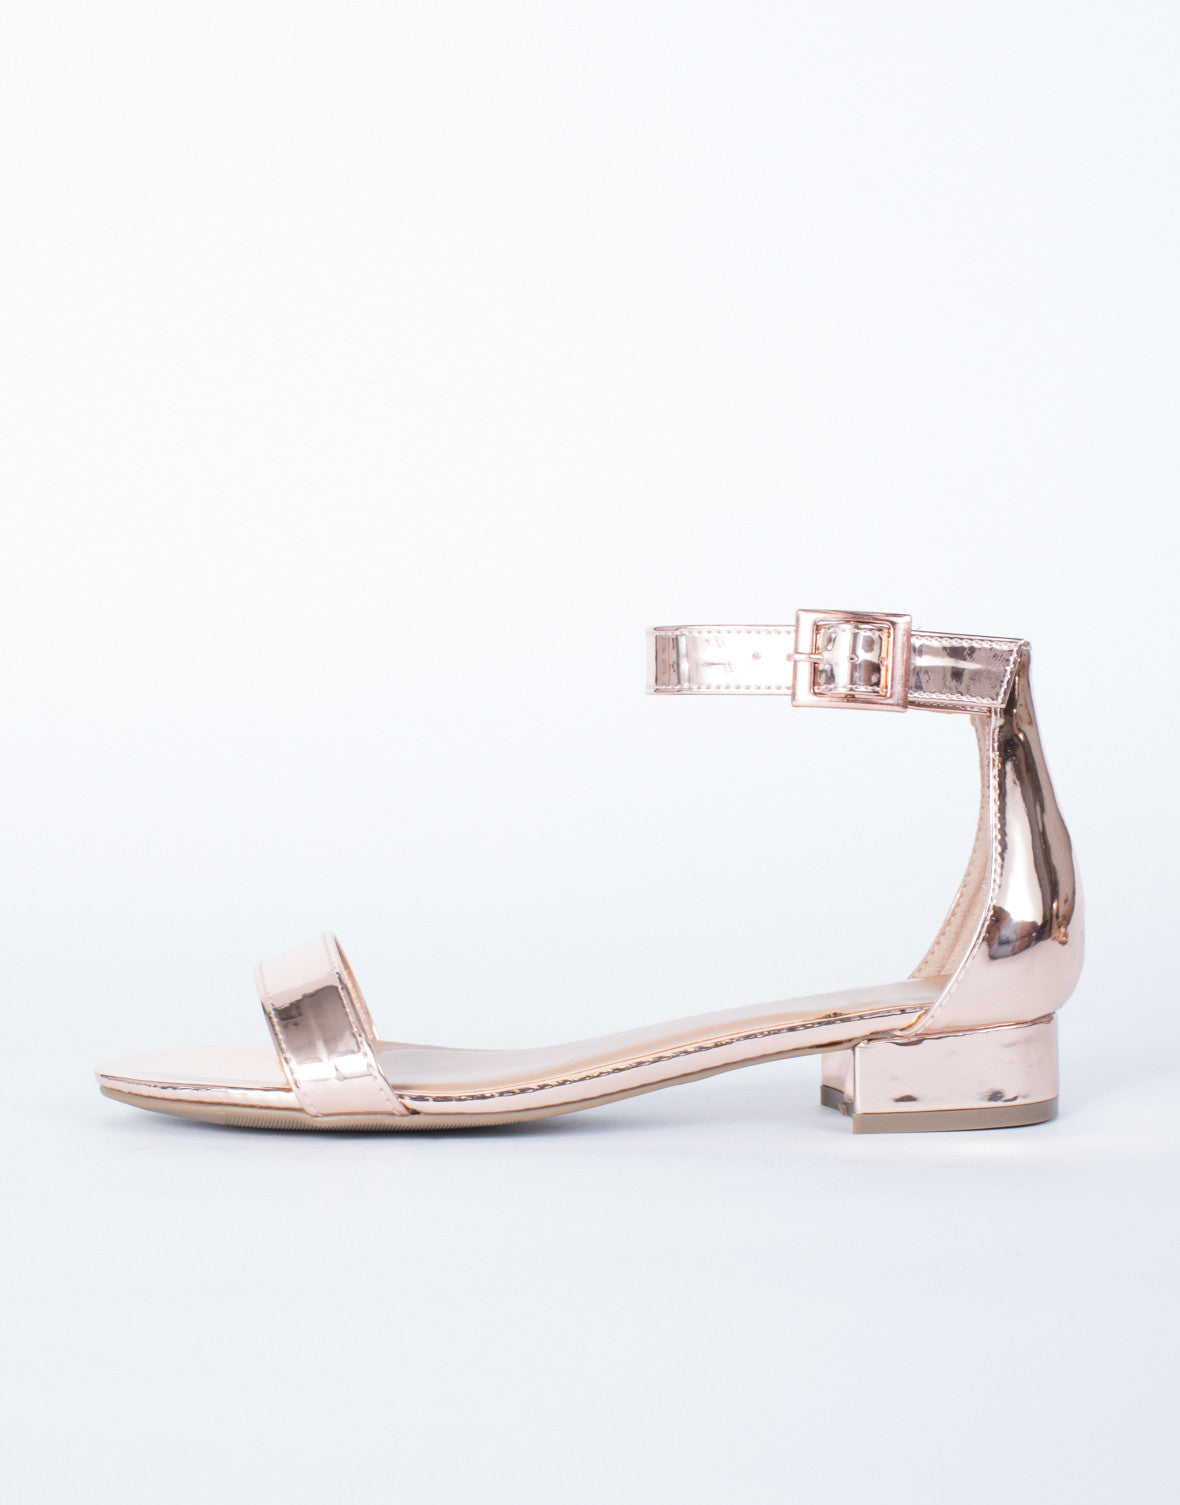 987a4d1ff108 Sylvia Metallic Sandals - Metallic Rose Gold Sandals - Low Block ...